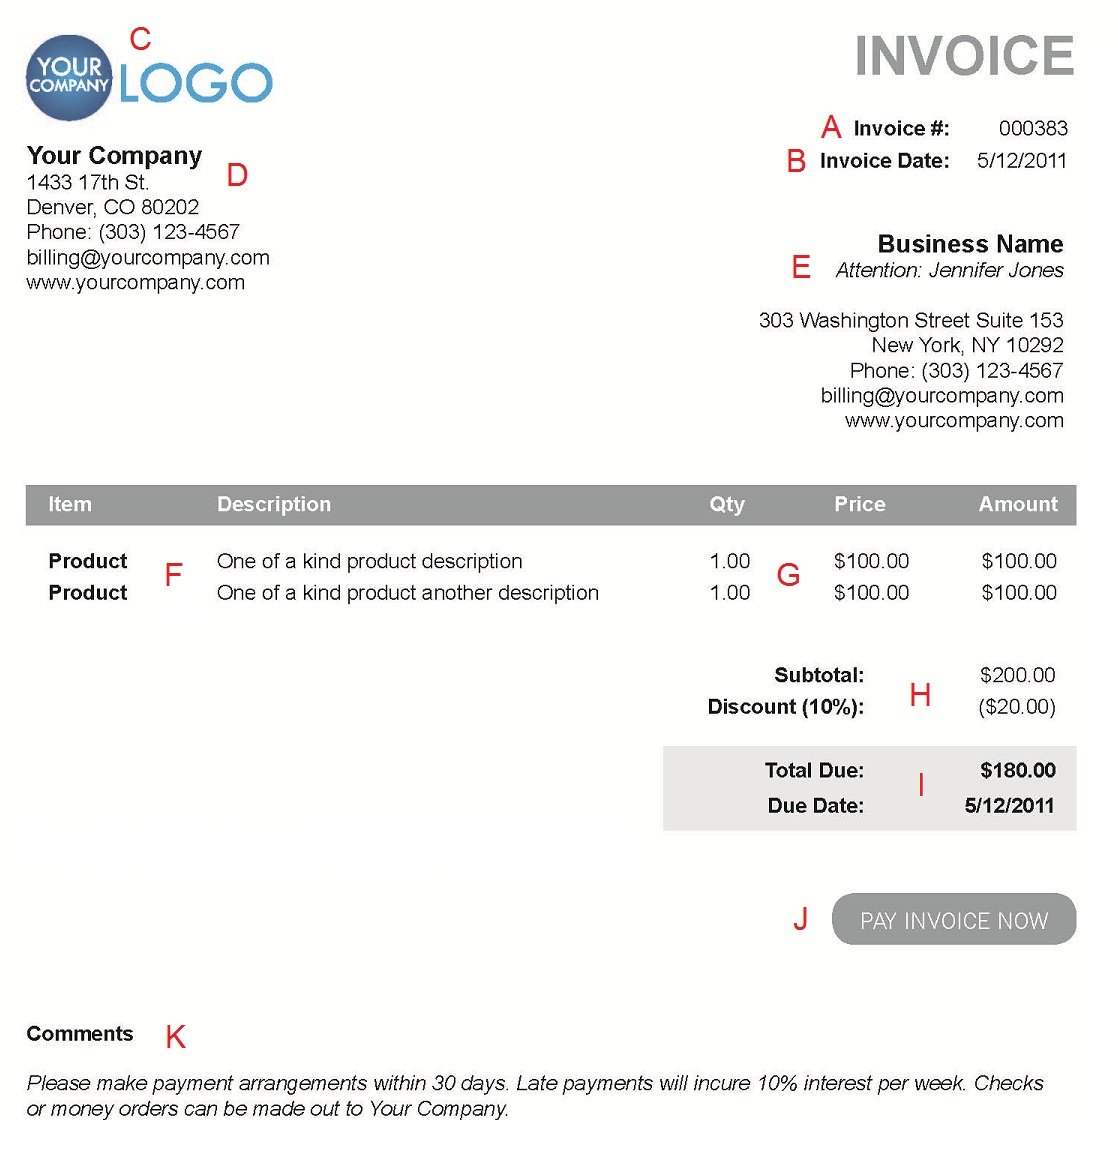 Hucareus  Outstanding The  Different Sections Of An Electronic Payment Invoice With Entrancing A  With Delectable Invoice Log Template Also Make Your Own Invoice Template In Addition Best Invoicing Software For Small Businesses And Interim Invoice Definition As Well As Specimen Of Invoice Additionally Apple Invoice Software From Paysimplecom With Hucareus  Entrancing The  Different Sections Of An Electronic Payment Invoice With Delectable A  And Outstanding Invoice Log Template Also Make Your Own Invoice Template In Addition Best Invoicing Software For Small Businesses From Paysimplecom